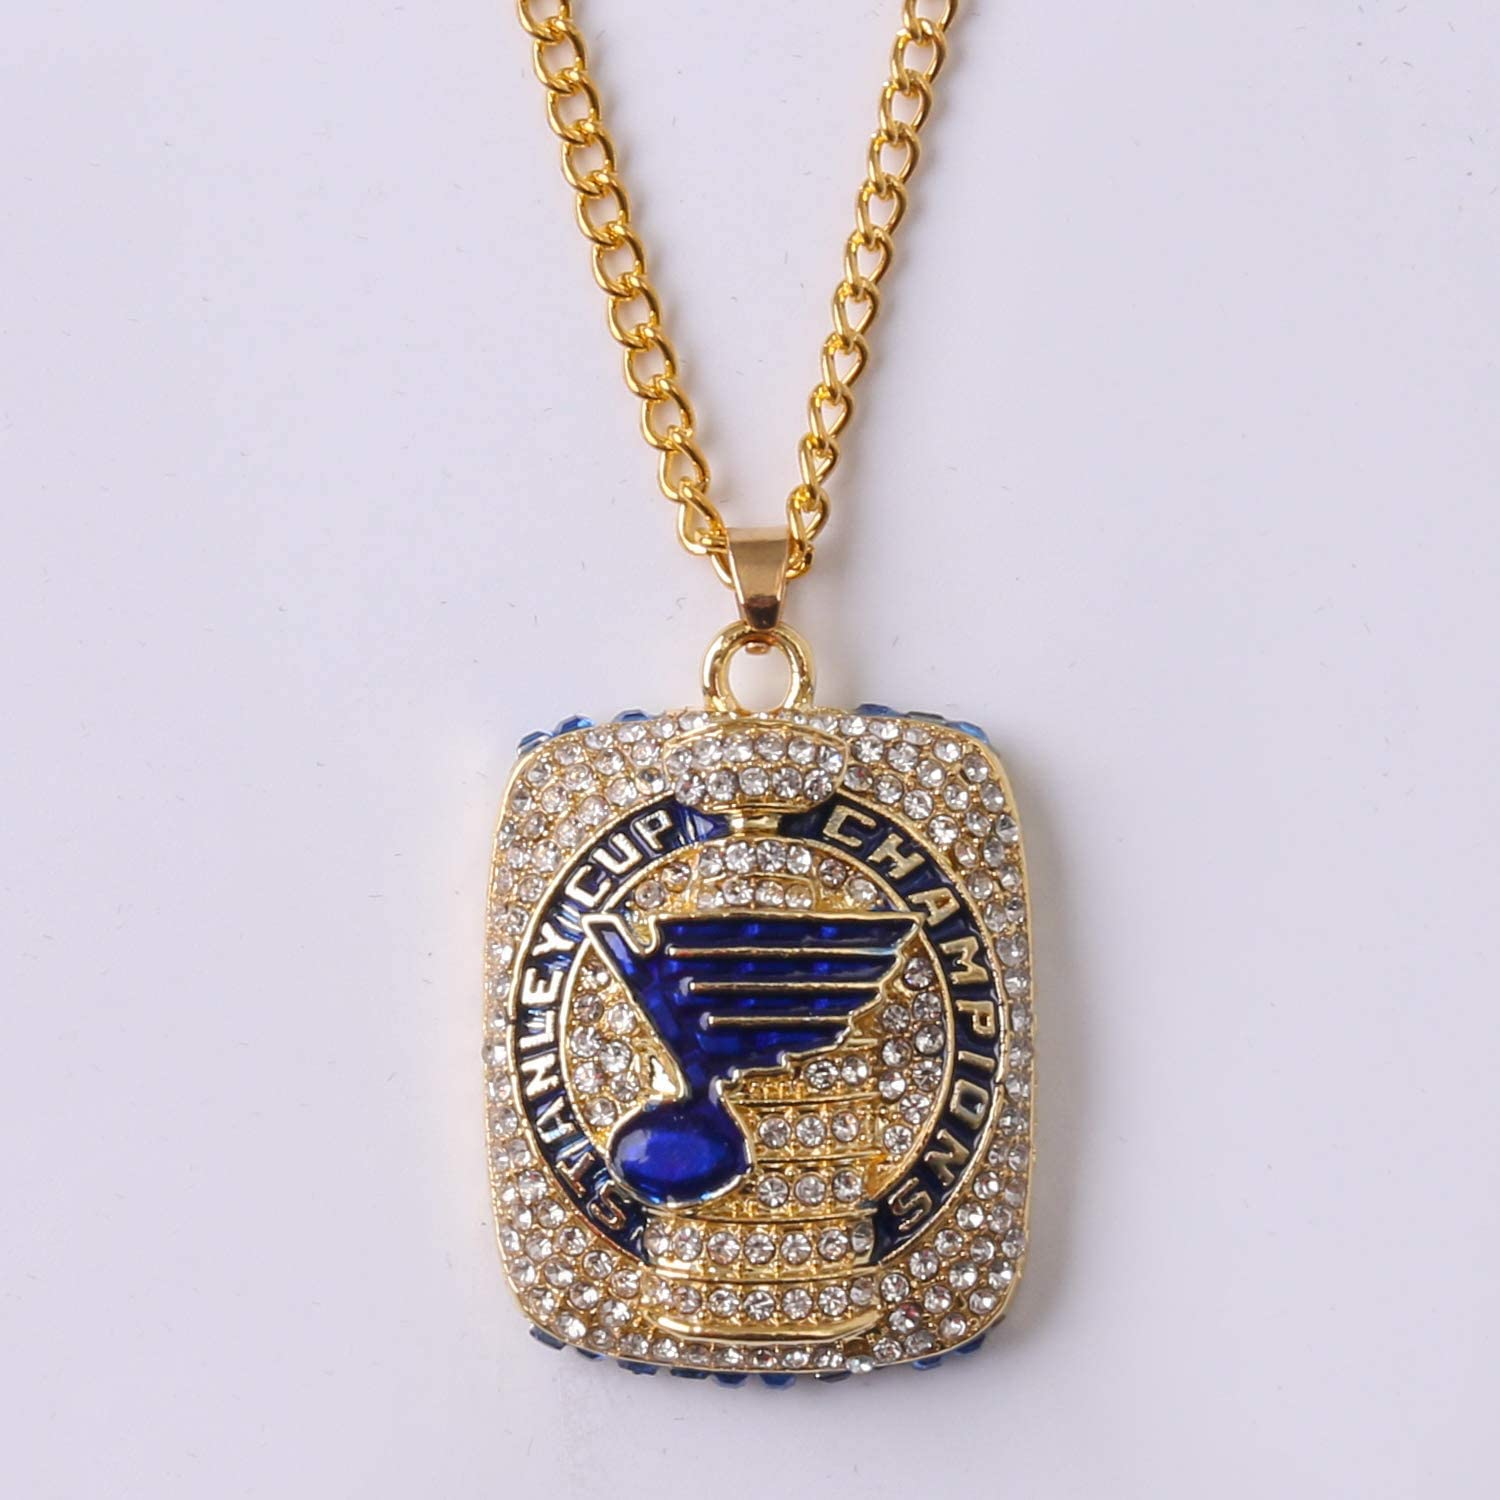 MVPRING St Louis Ring 2019 Blues Replica Championship Rings Size 8-14